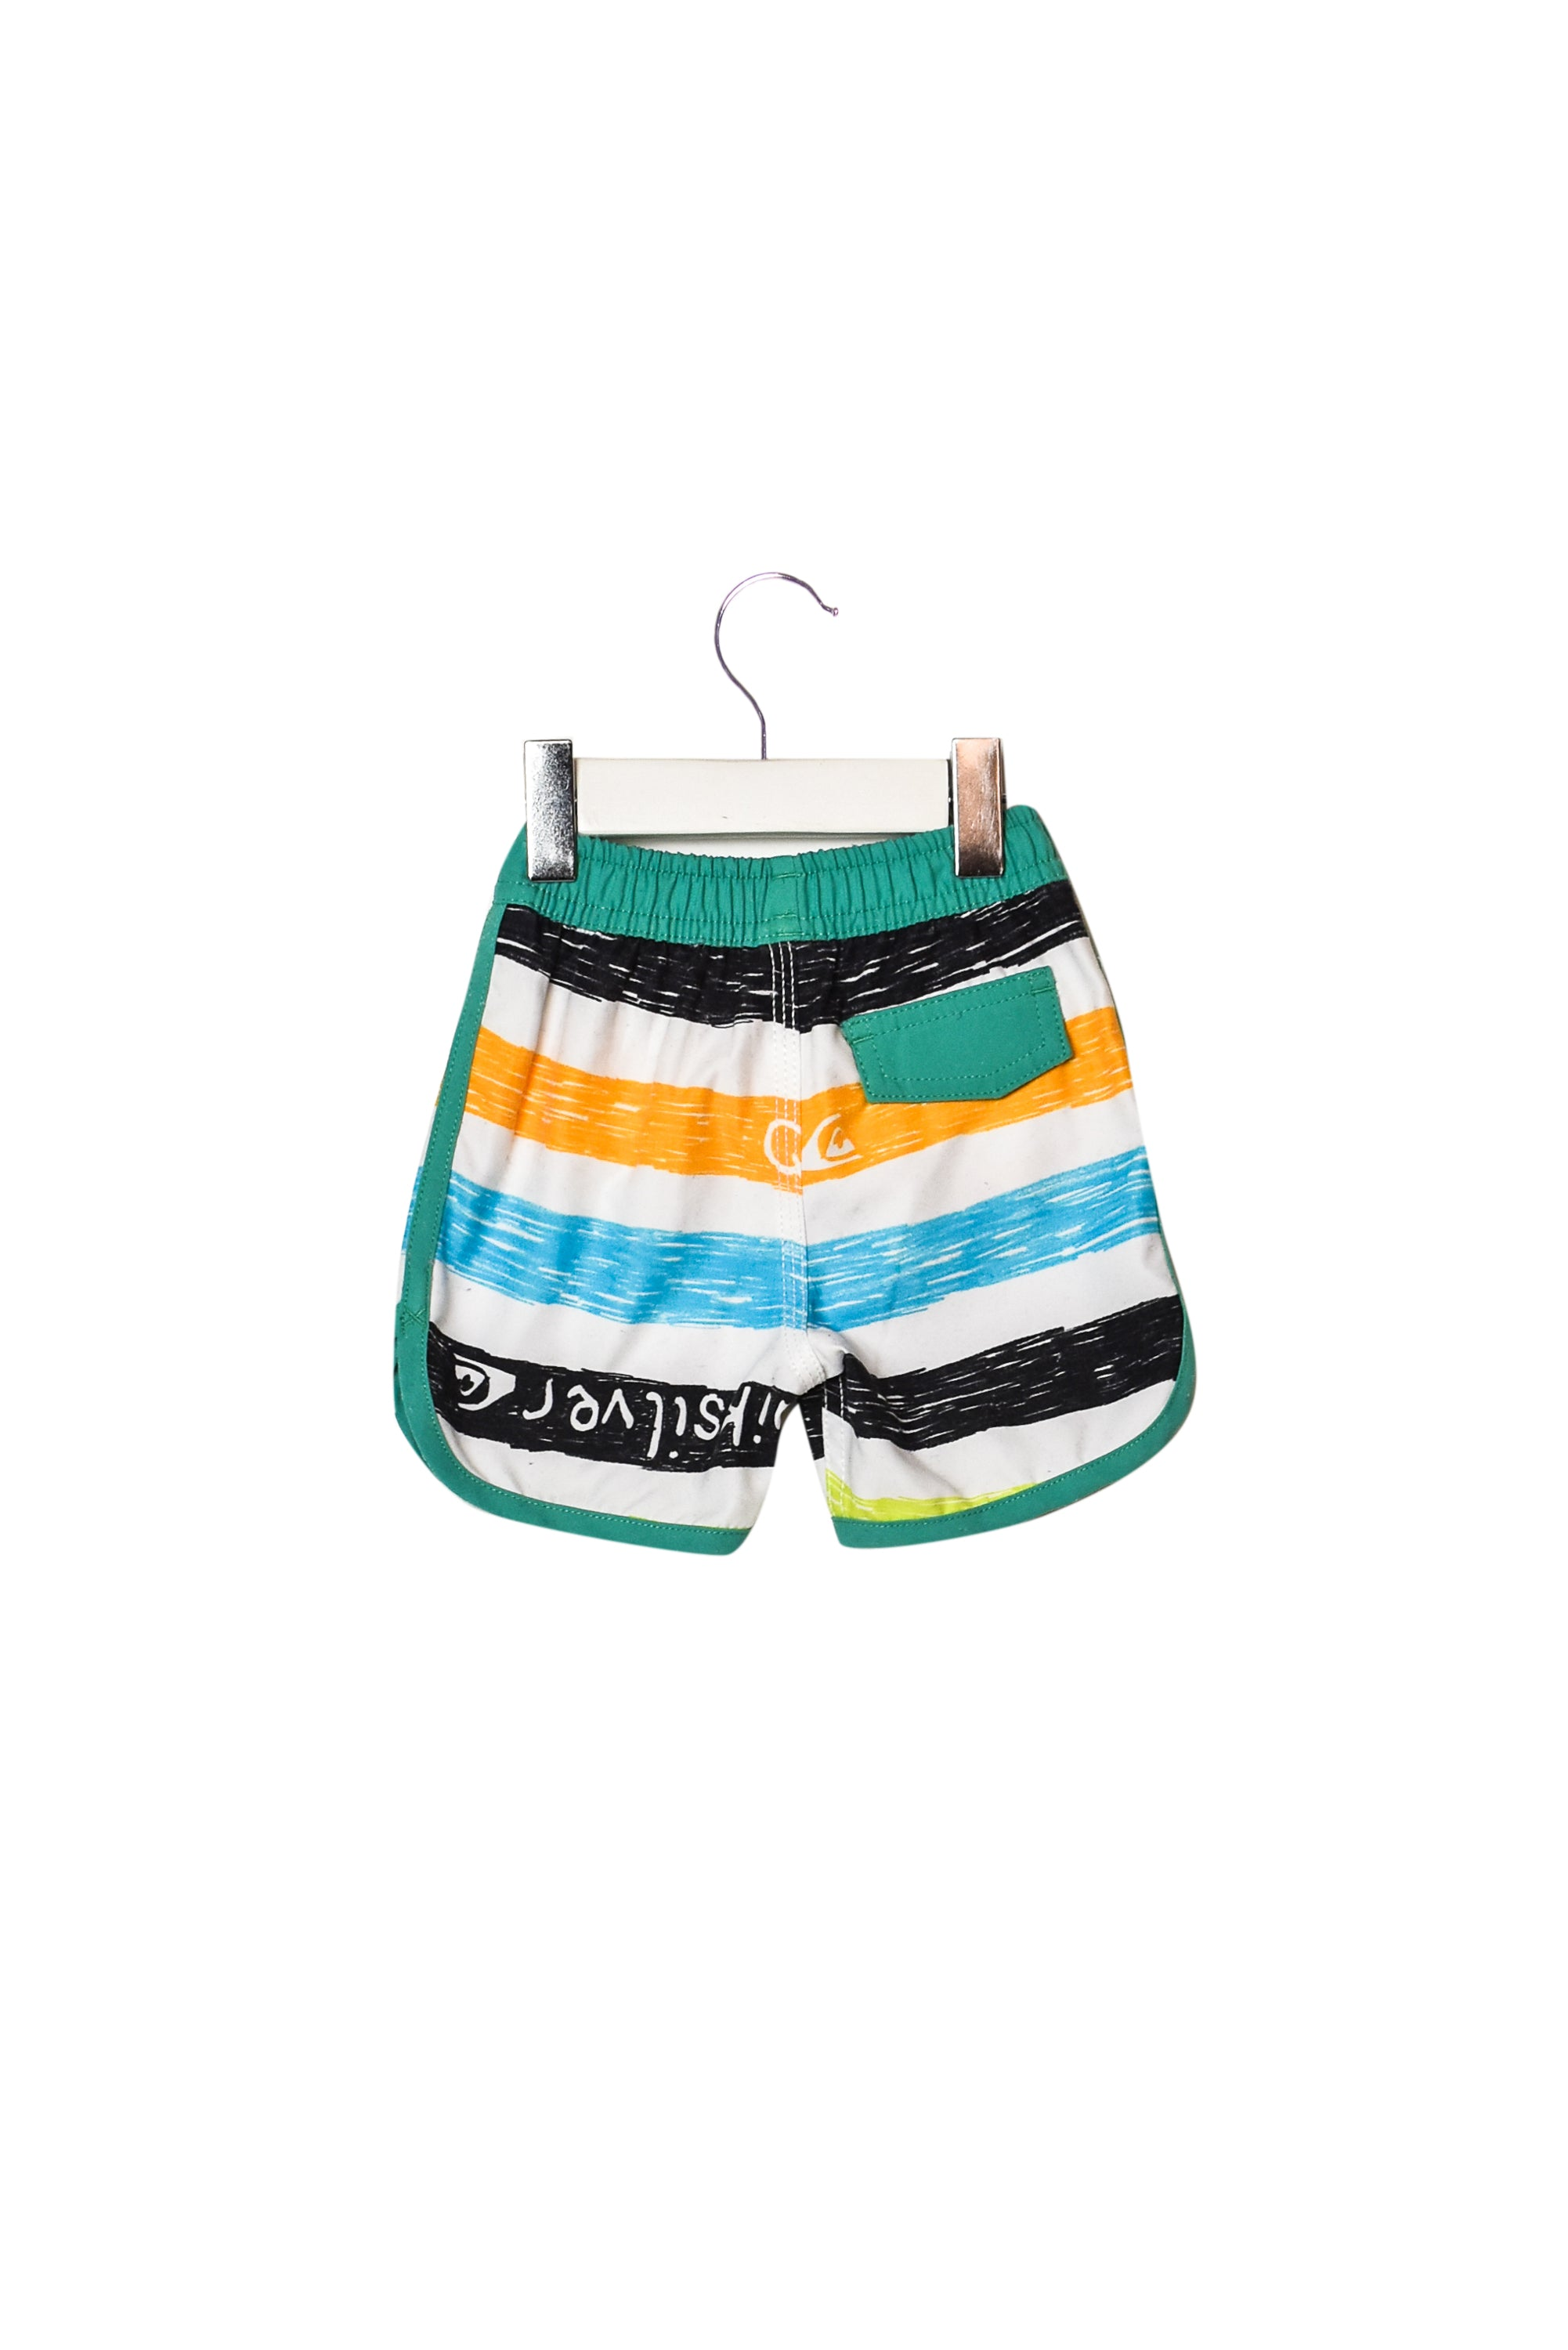 a8288973e2 10009699 Quiksilver Baby~Swimwear 6M at Retykle